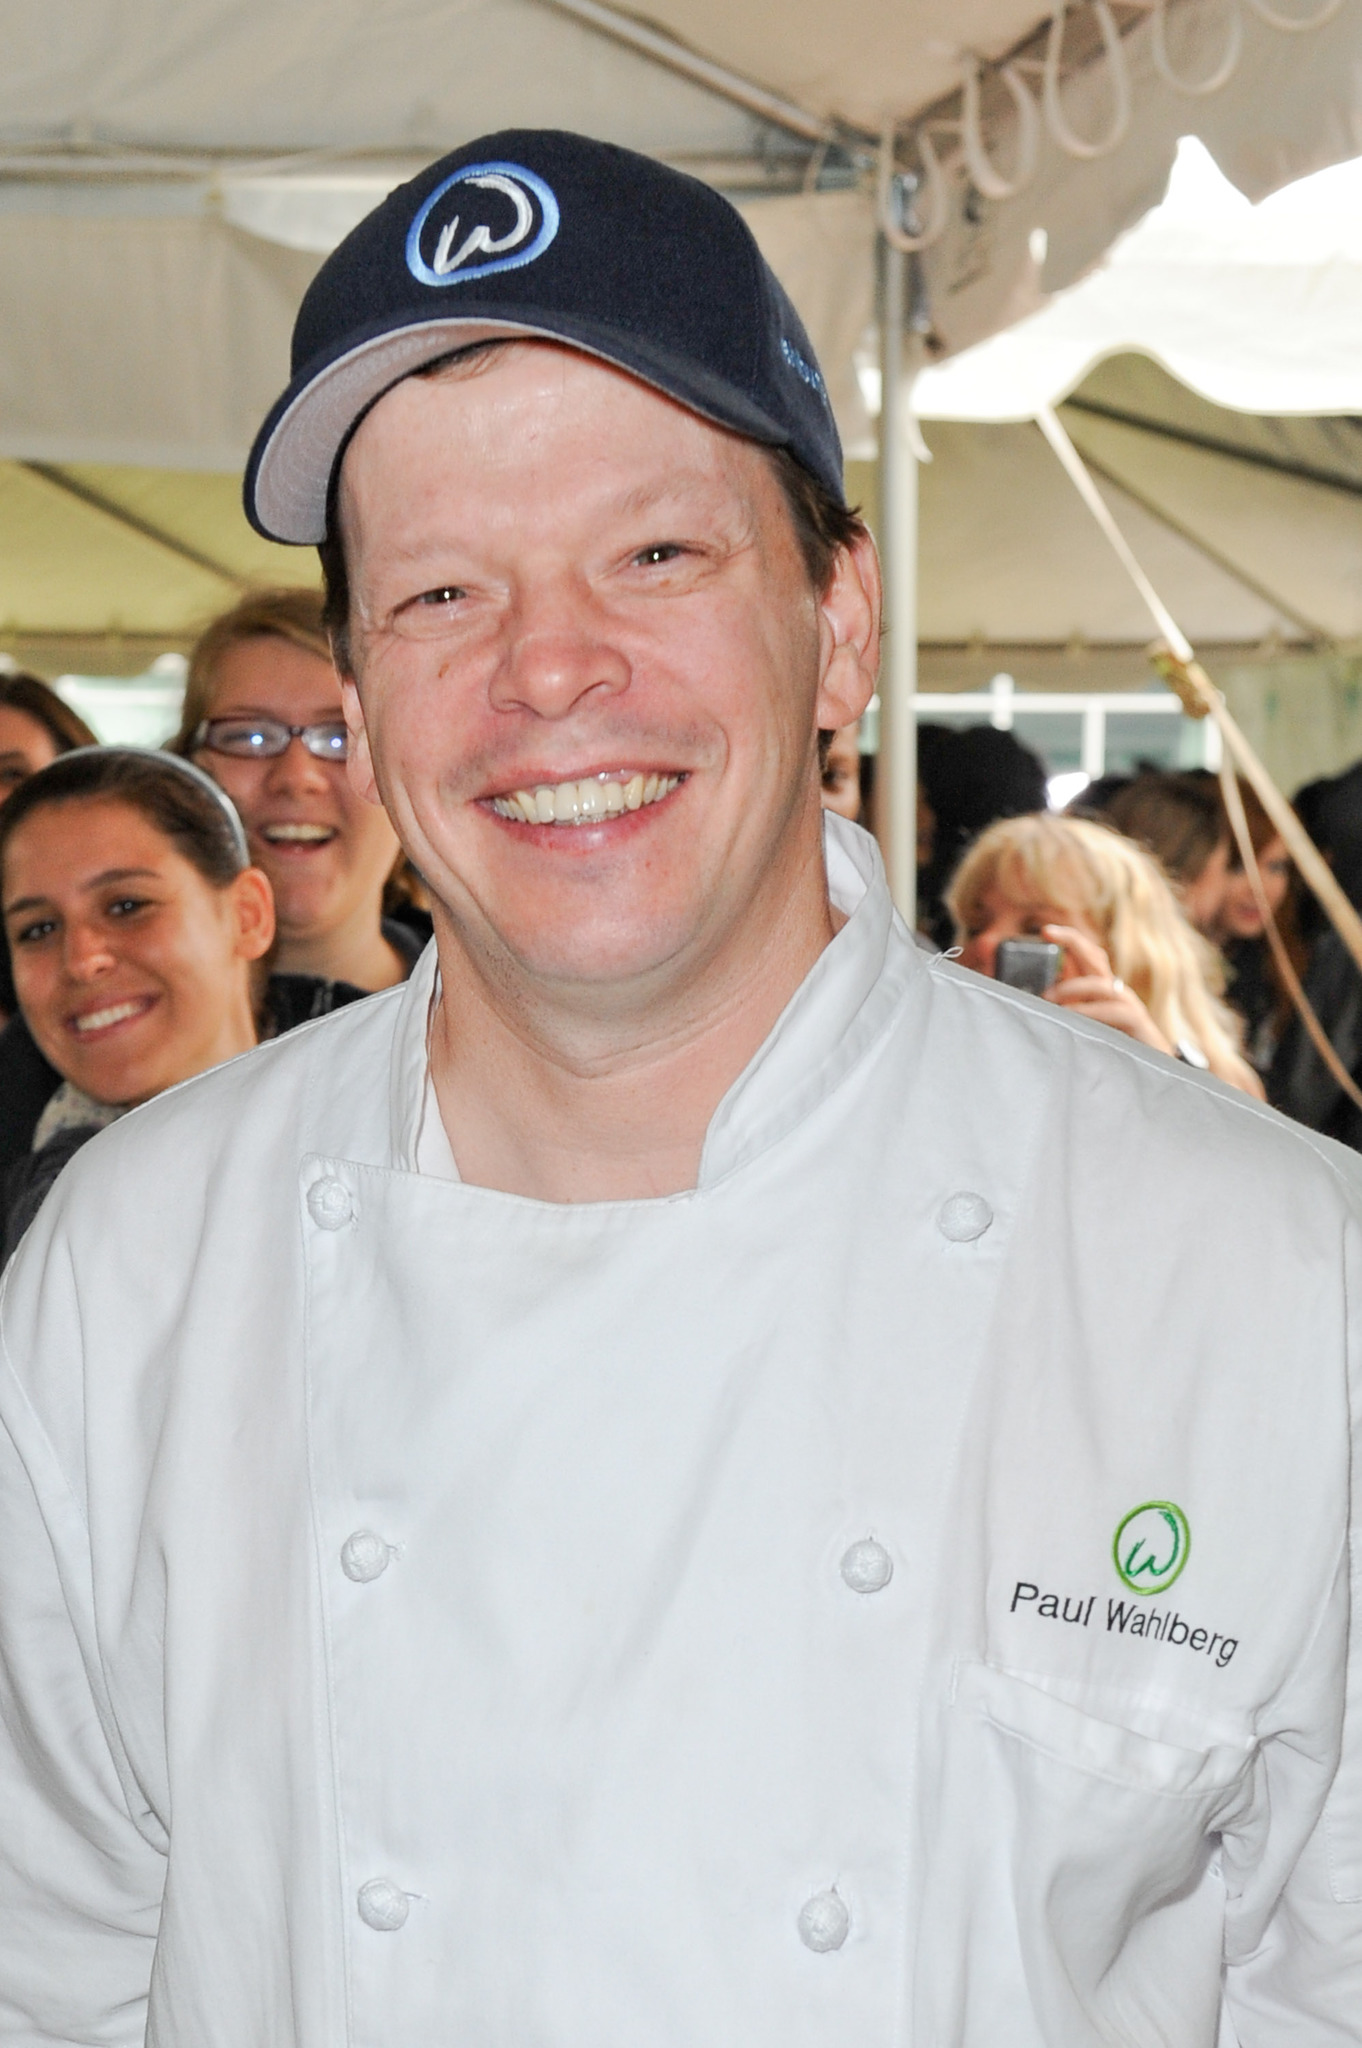 Photo of Alma Wahlberg  & her Son  Paul Wahlberg